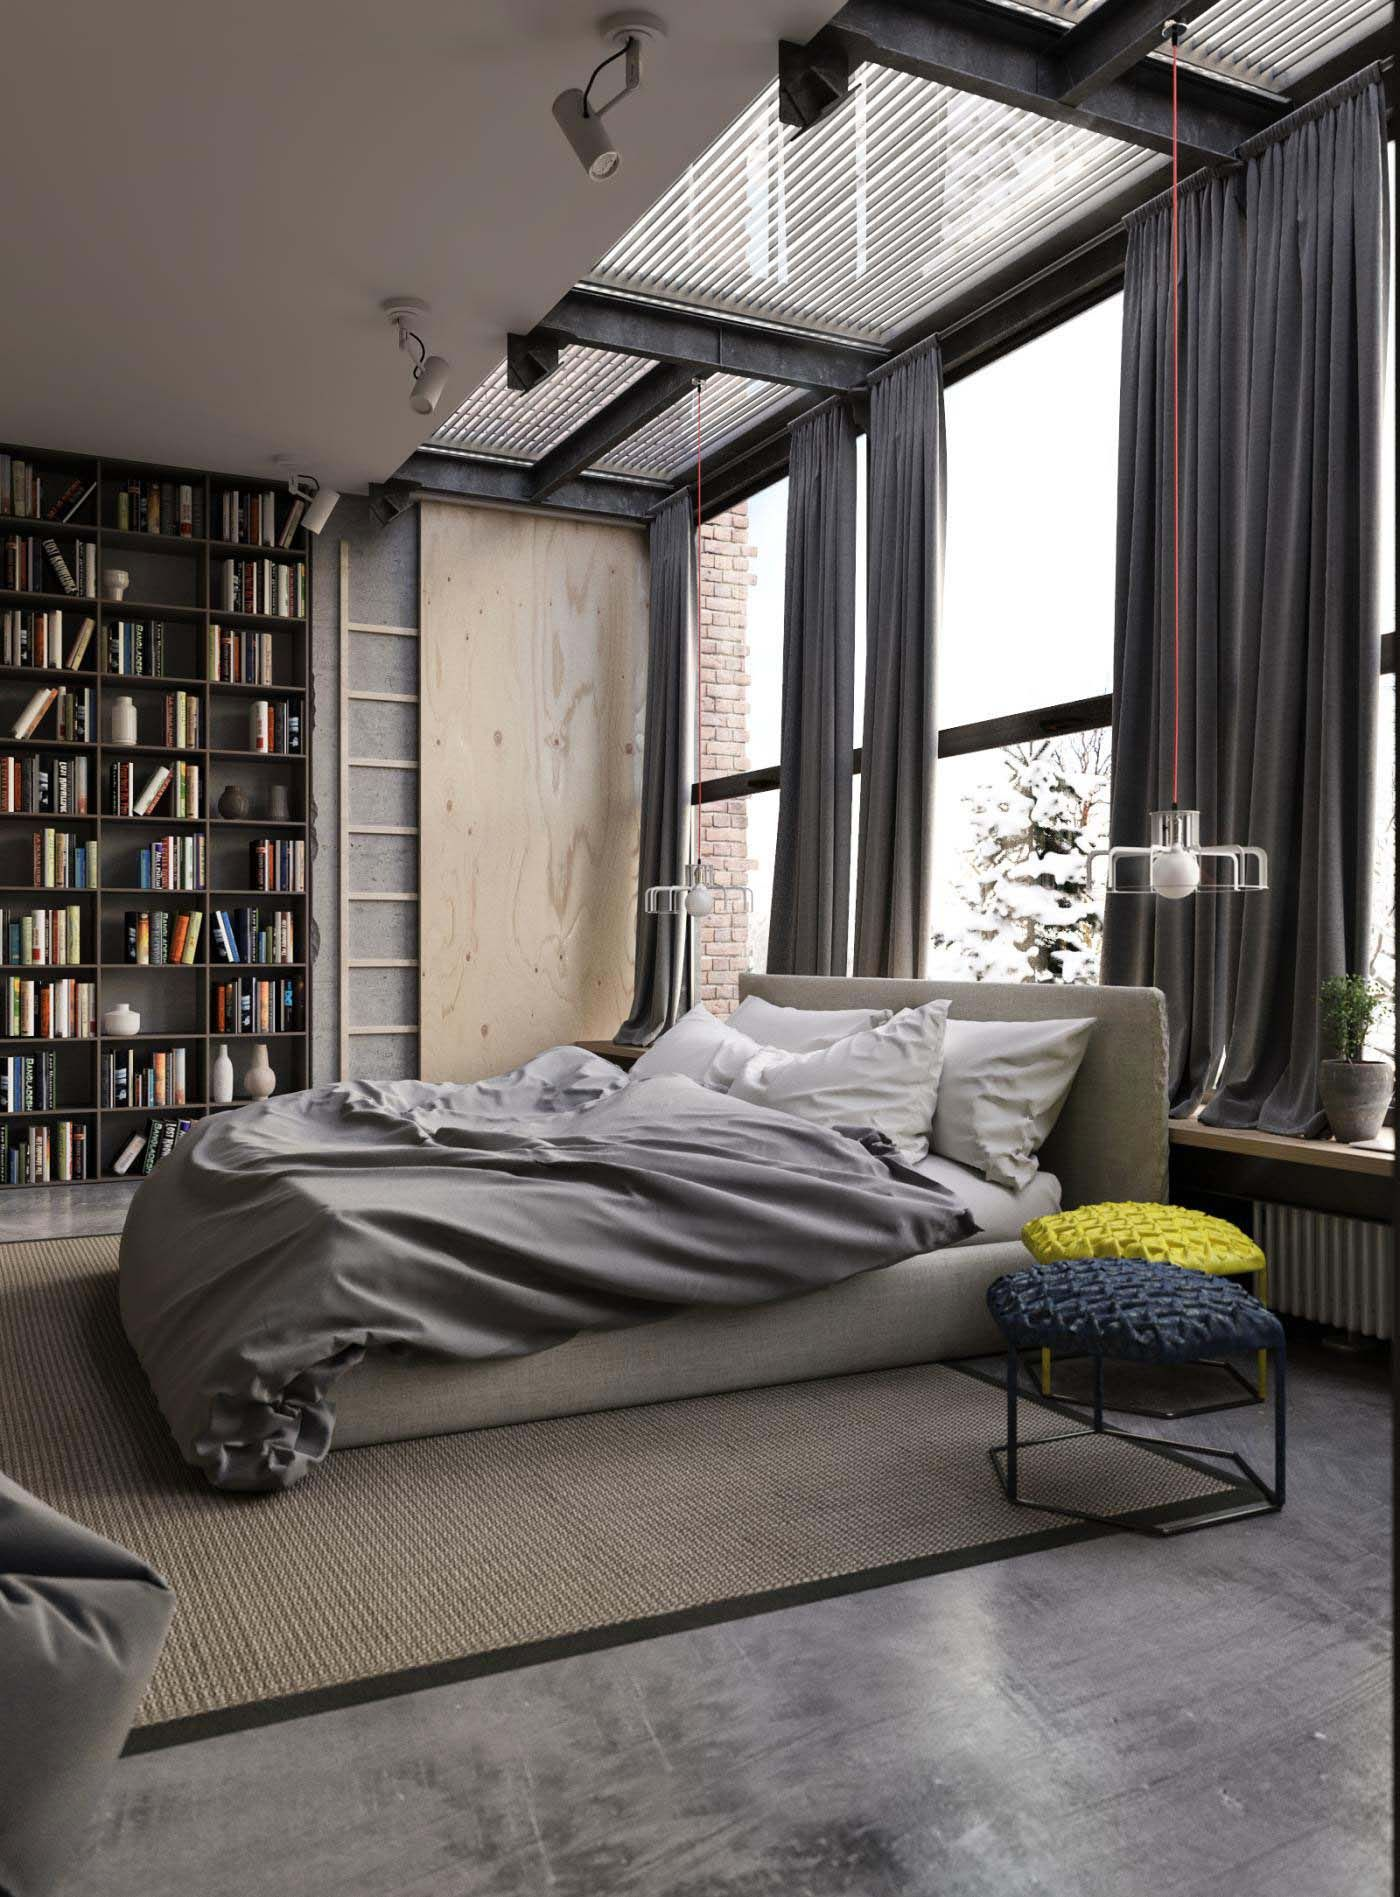 High Quality Industrial Style Bedroom Design Ideas 34 1 Kindesign